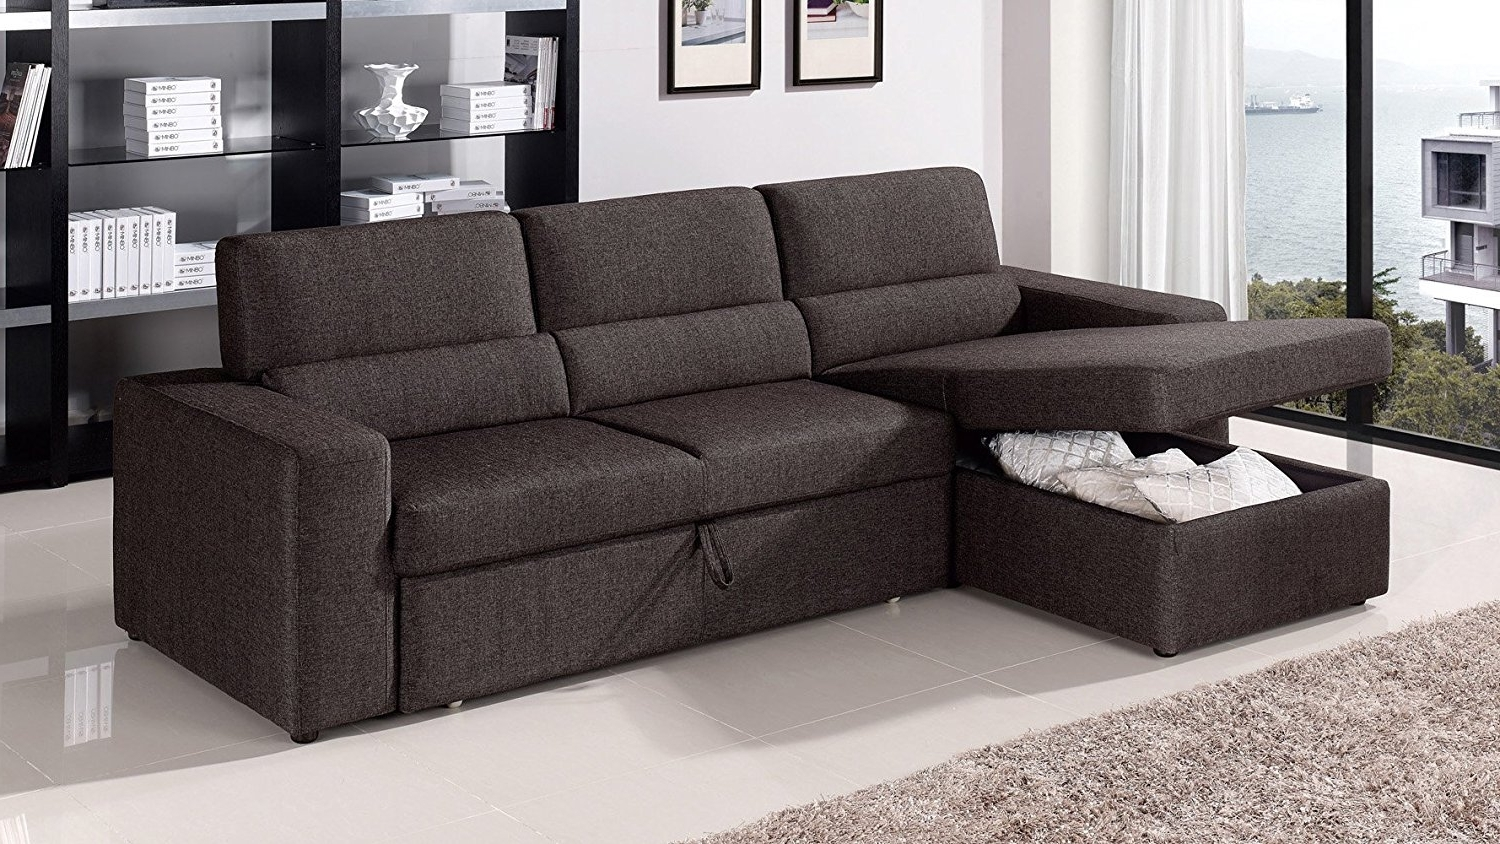 Amazon: Black/brown Clubber Sleeper Sectional Sofa – Left With Widely Used Sofa Chaise Sleepers (View 5 of 15)